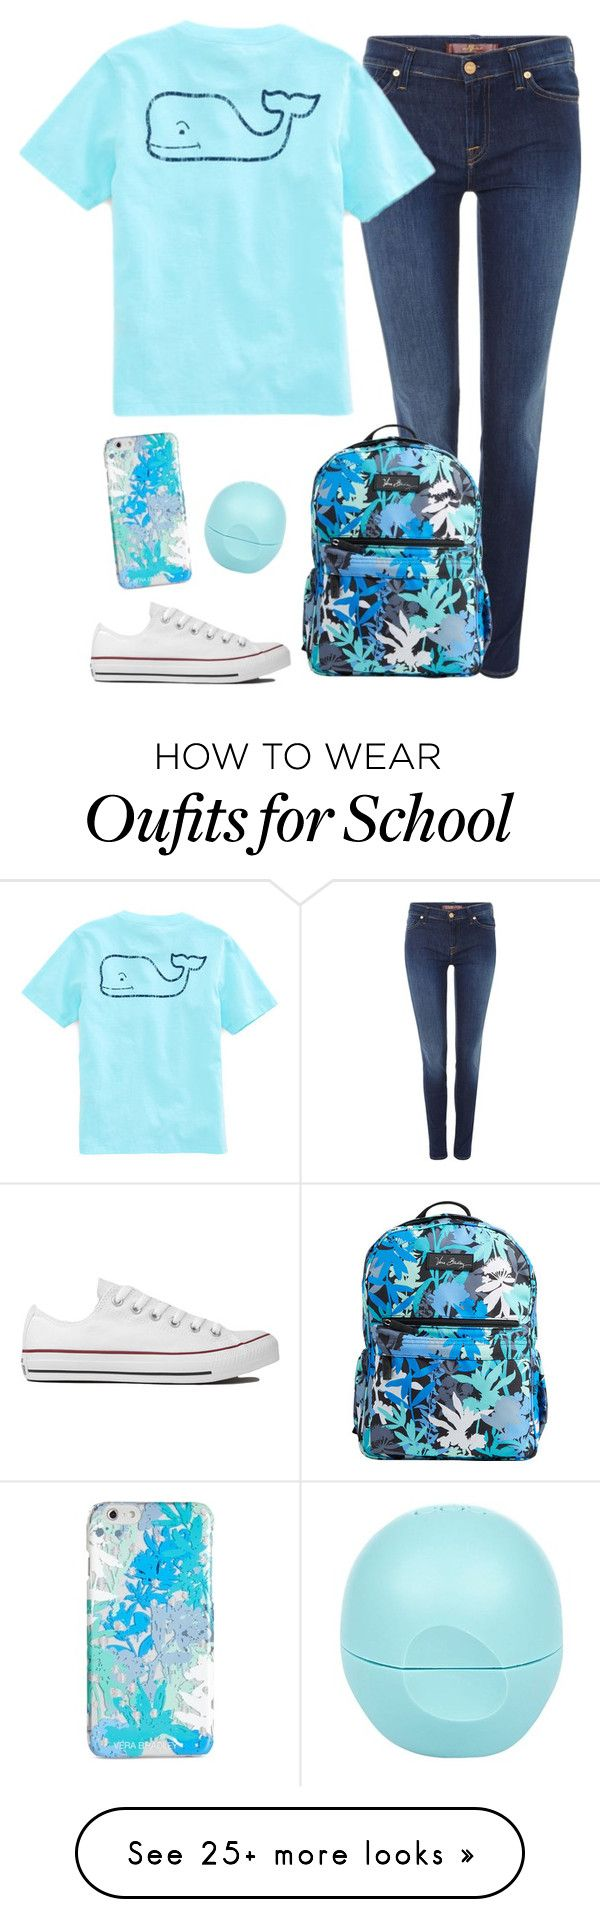 """School//Thuy"" by southern-slayers on Polyvore featuring 7 For All Mankind, Vineyard Vines, Converse, Vera Bradley and River Island"